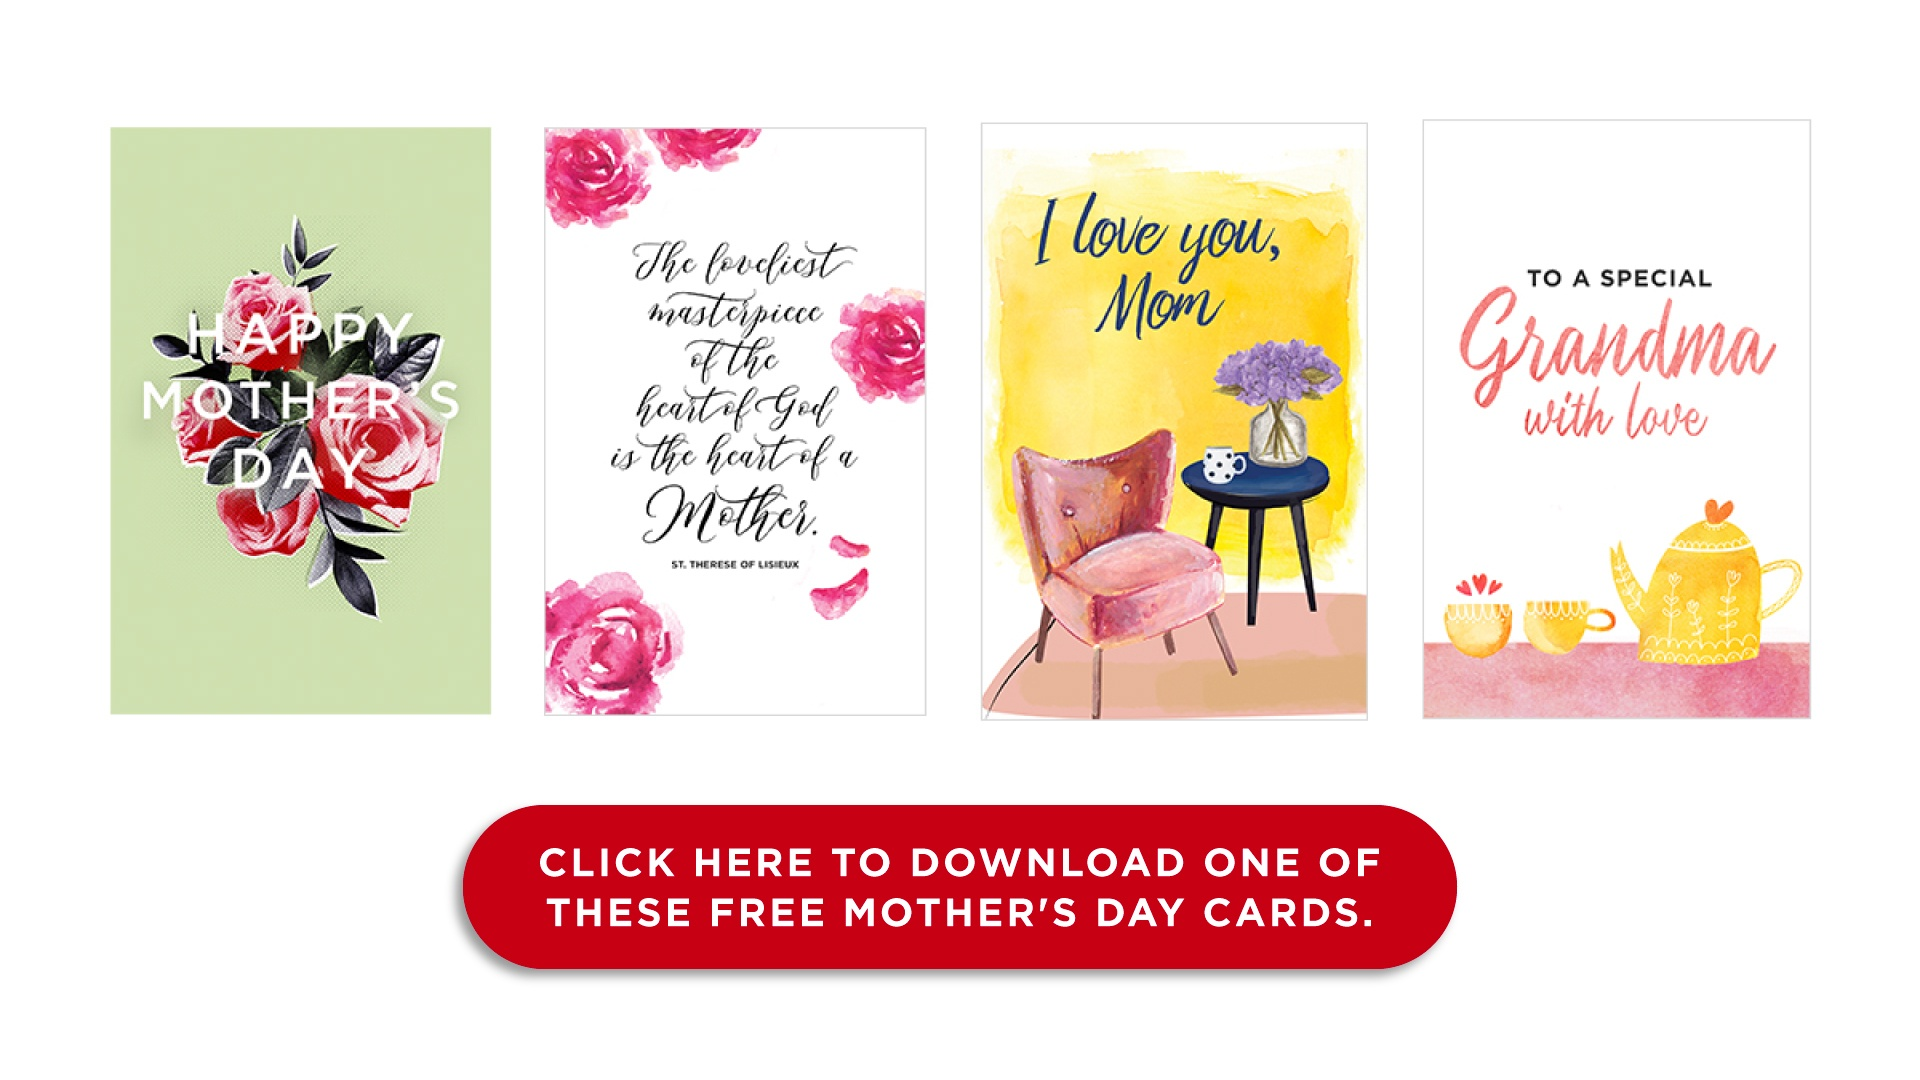 Click here to download one of these free Mother's Day cards.